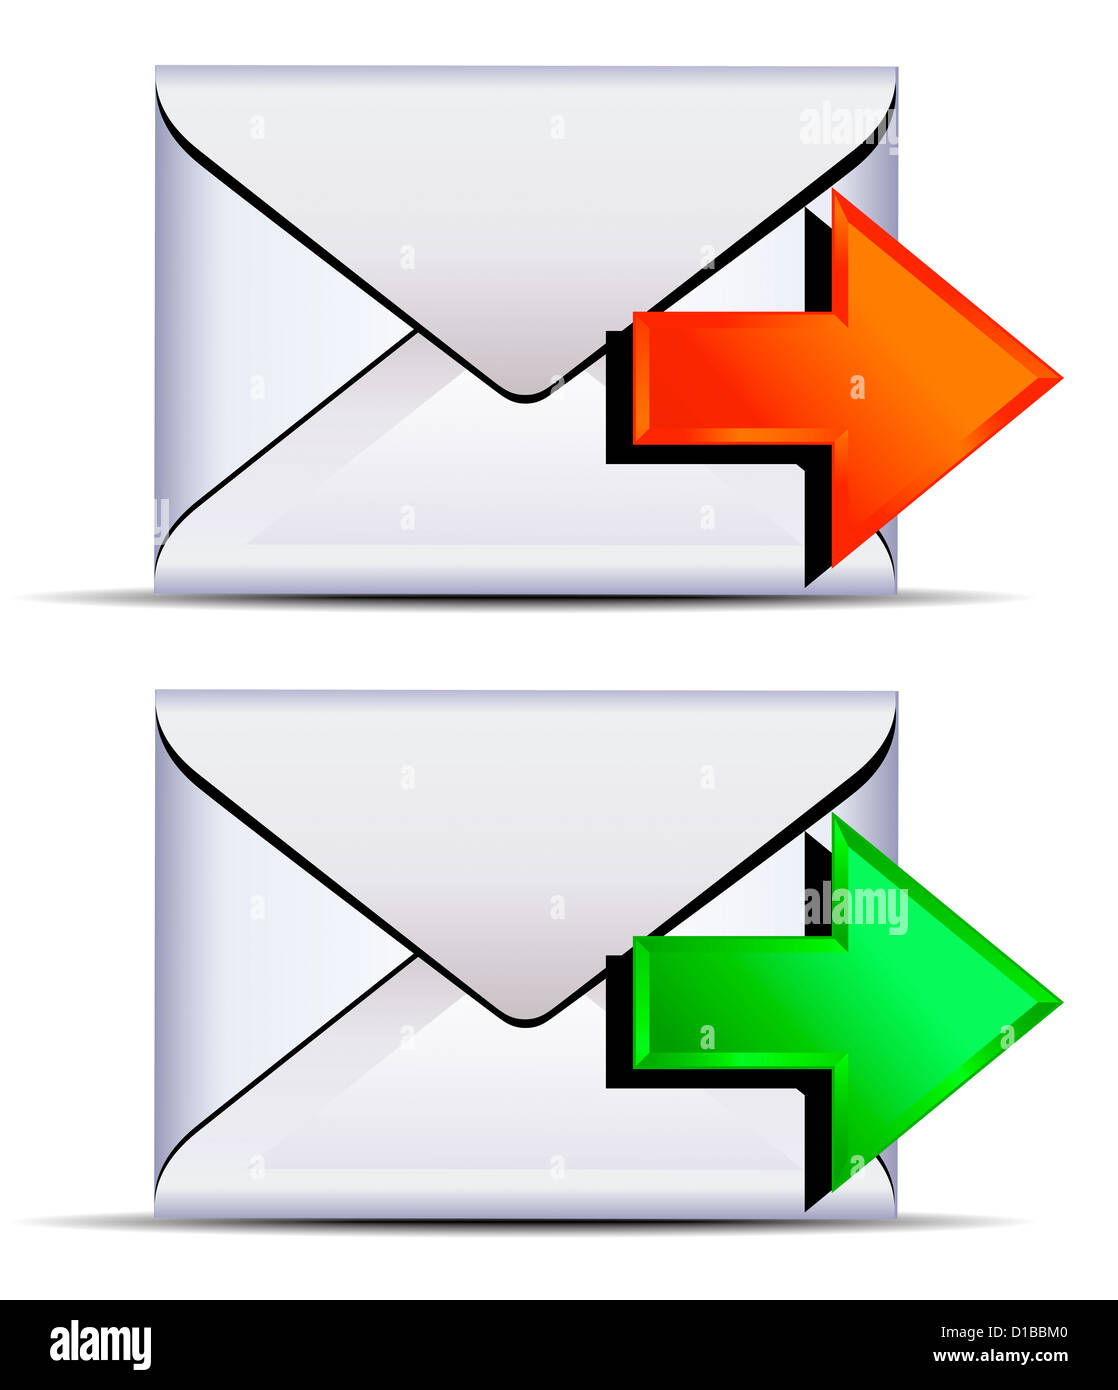 Contact email send icon - email sent with red and green arrows - Stock Image